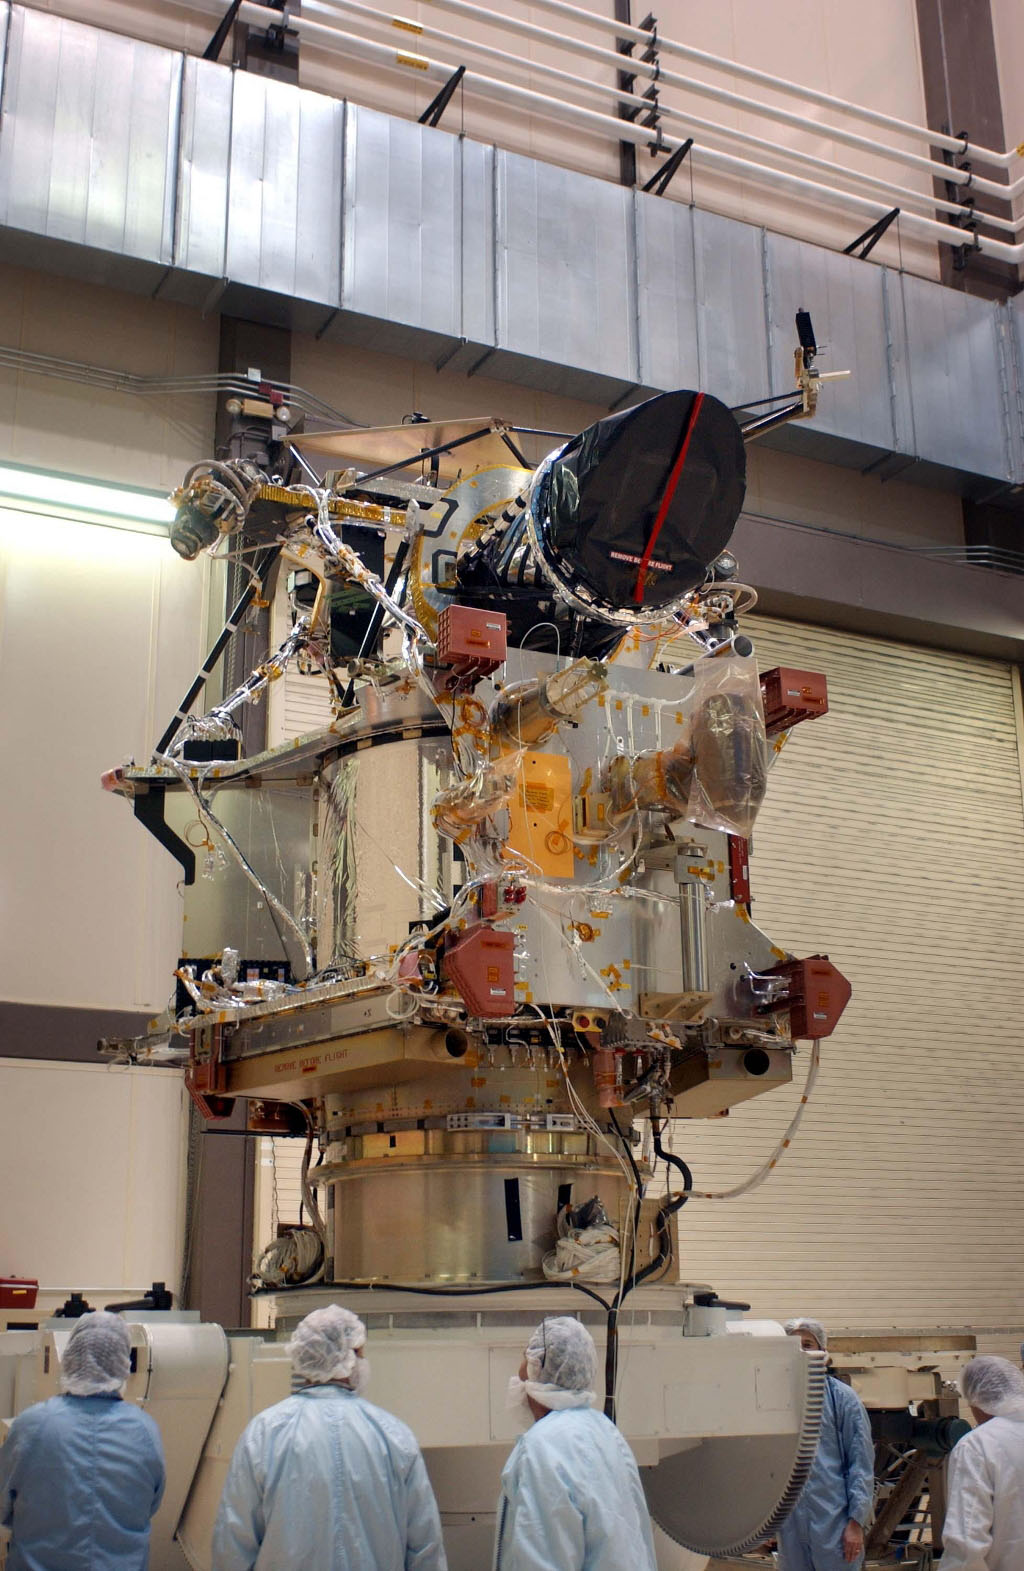 A telescopic camera called the High Resolution Imaging Science Experiment, or HiRISE, was installed onto the main structure of NASA's Mars Reconnaissance Orbiter on Dec. 11, 2004 at Lockheed Martin Space Systems, Denver, Colo.